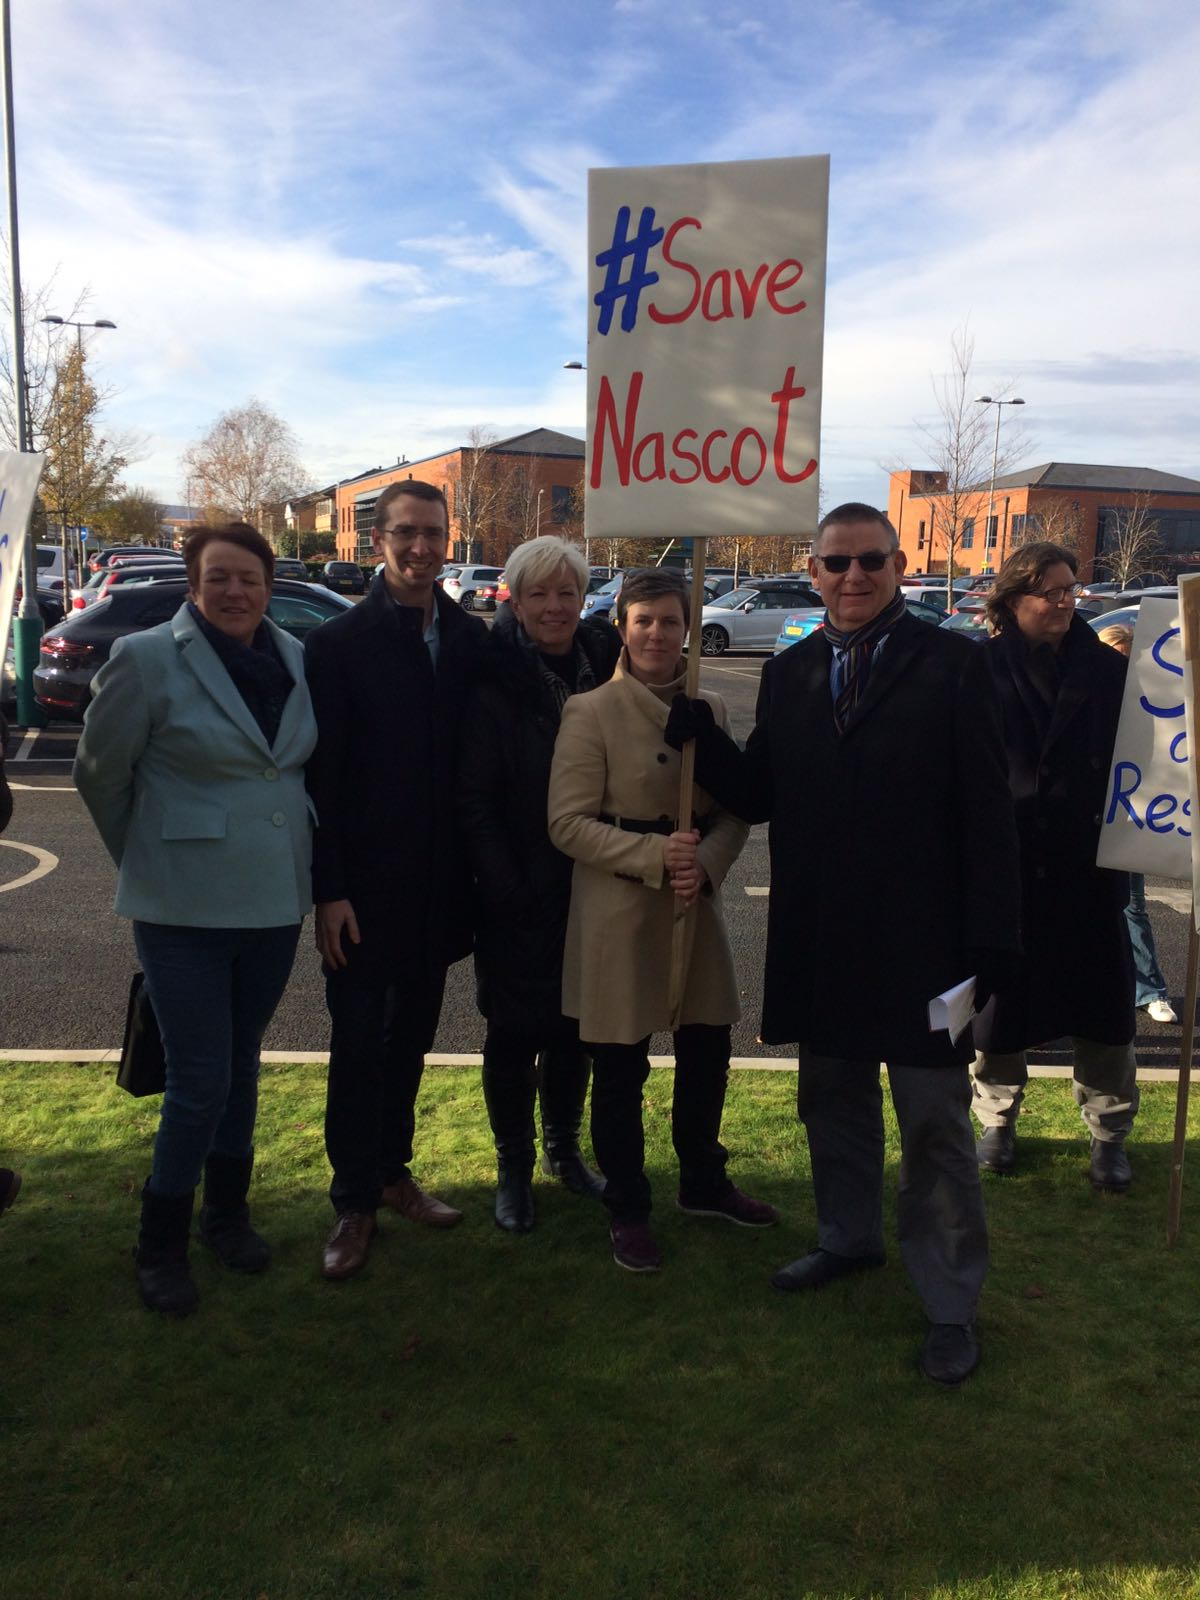 Liberal Democrats slam heartless Herts Valleys CCG as it pulls the plug on Nascot Lawn